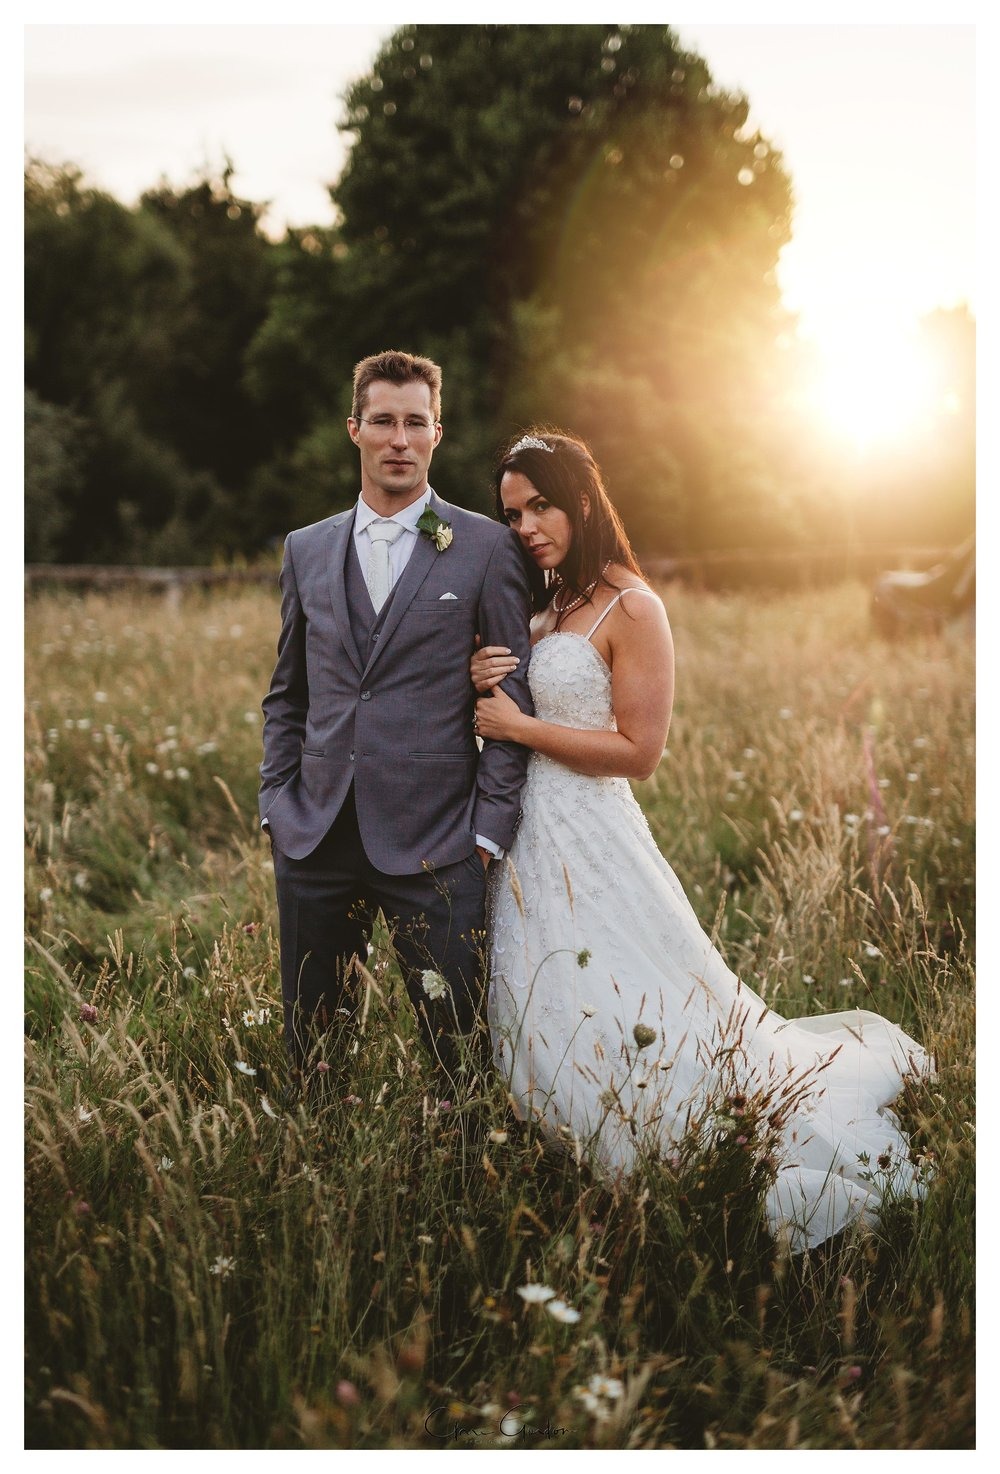 Hamilton-wedding-photographer-Waikato-Couple-Newzealand-weddnig-photographer (112).jpg